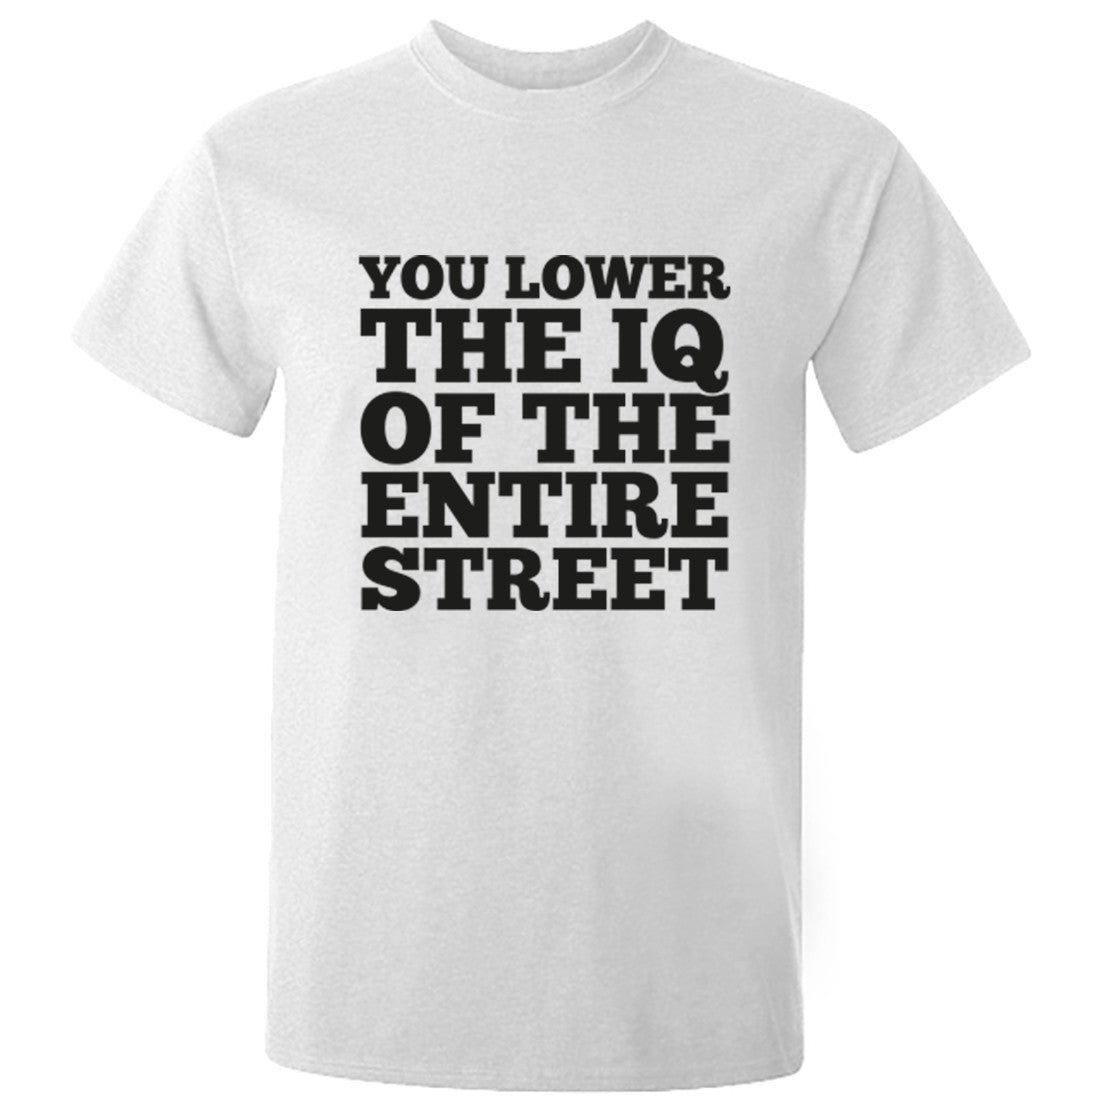 You Lower The IQ Of The Entire Street Unisex Fit T-Shirt K0566 - Illustrated Identity Ltd.